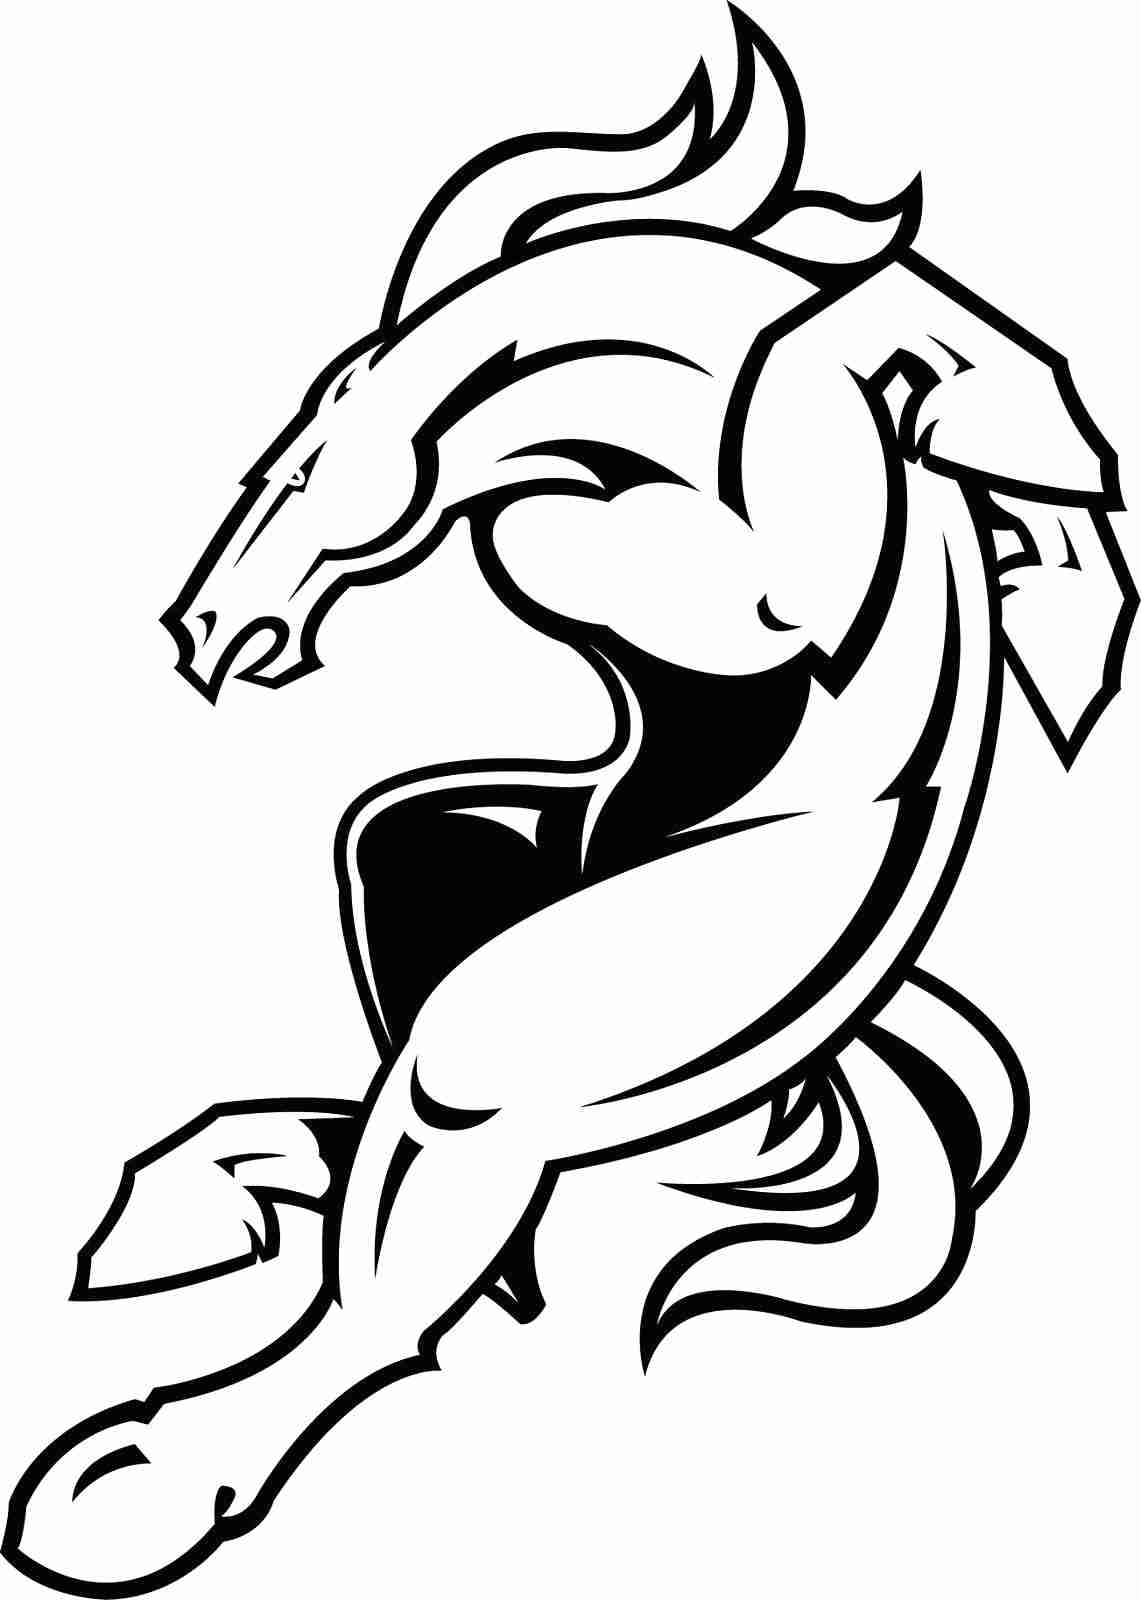 1141x1600 Bronco Horse Jumping Coloring Page With Pages